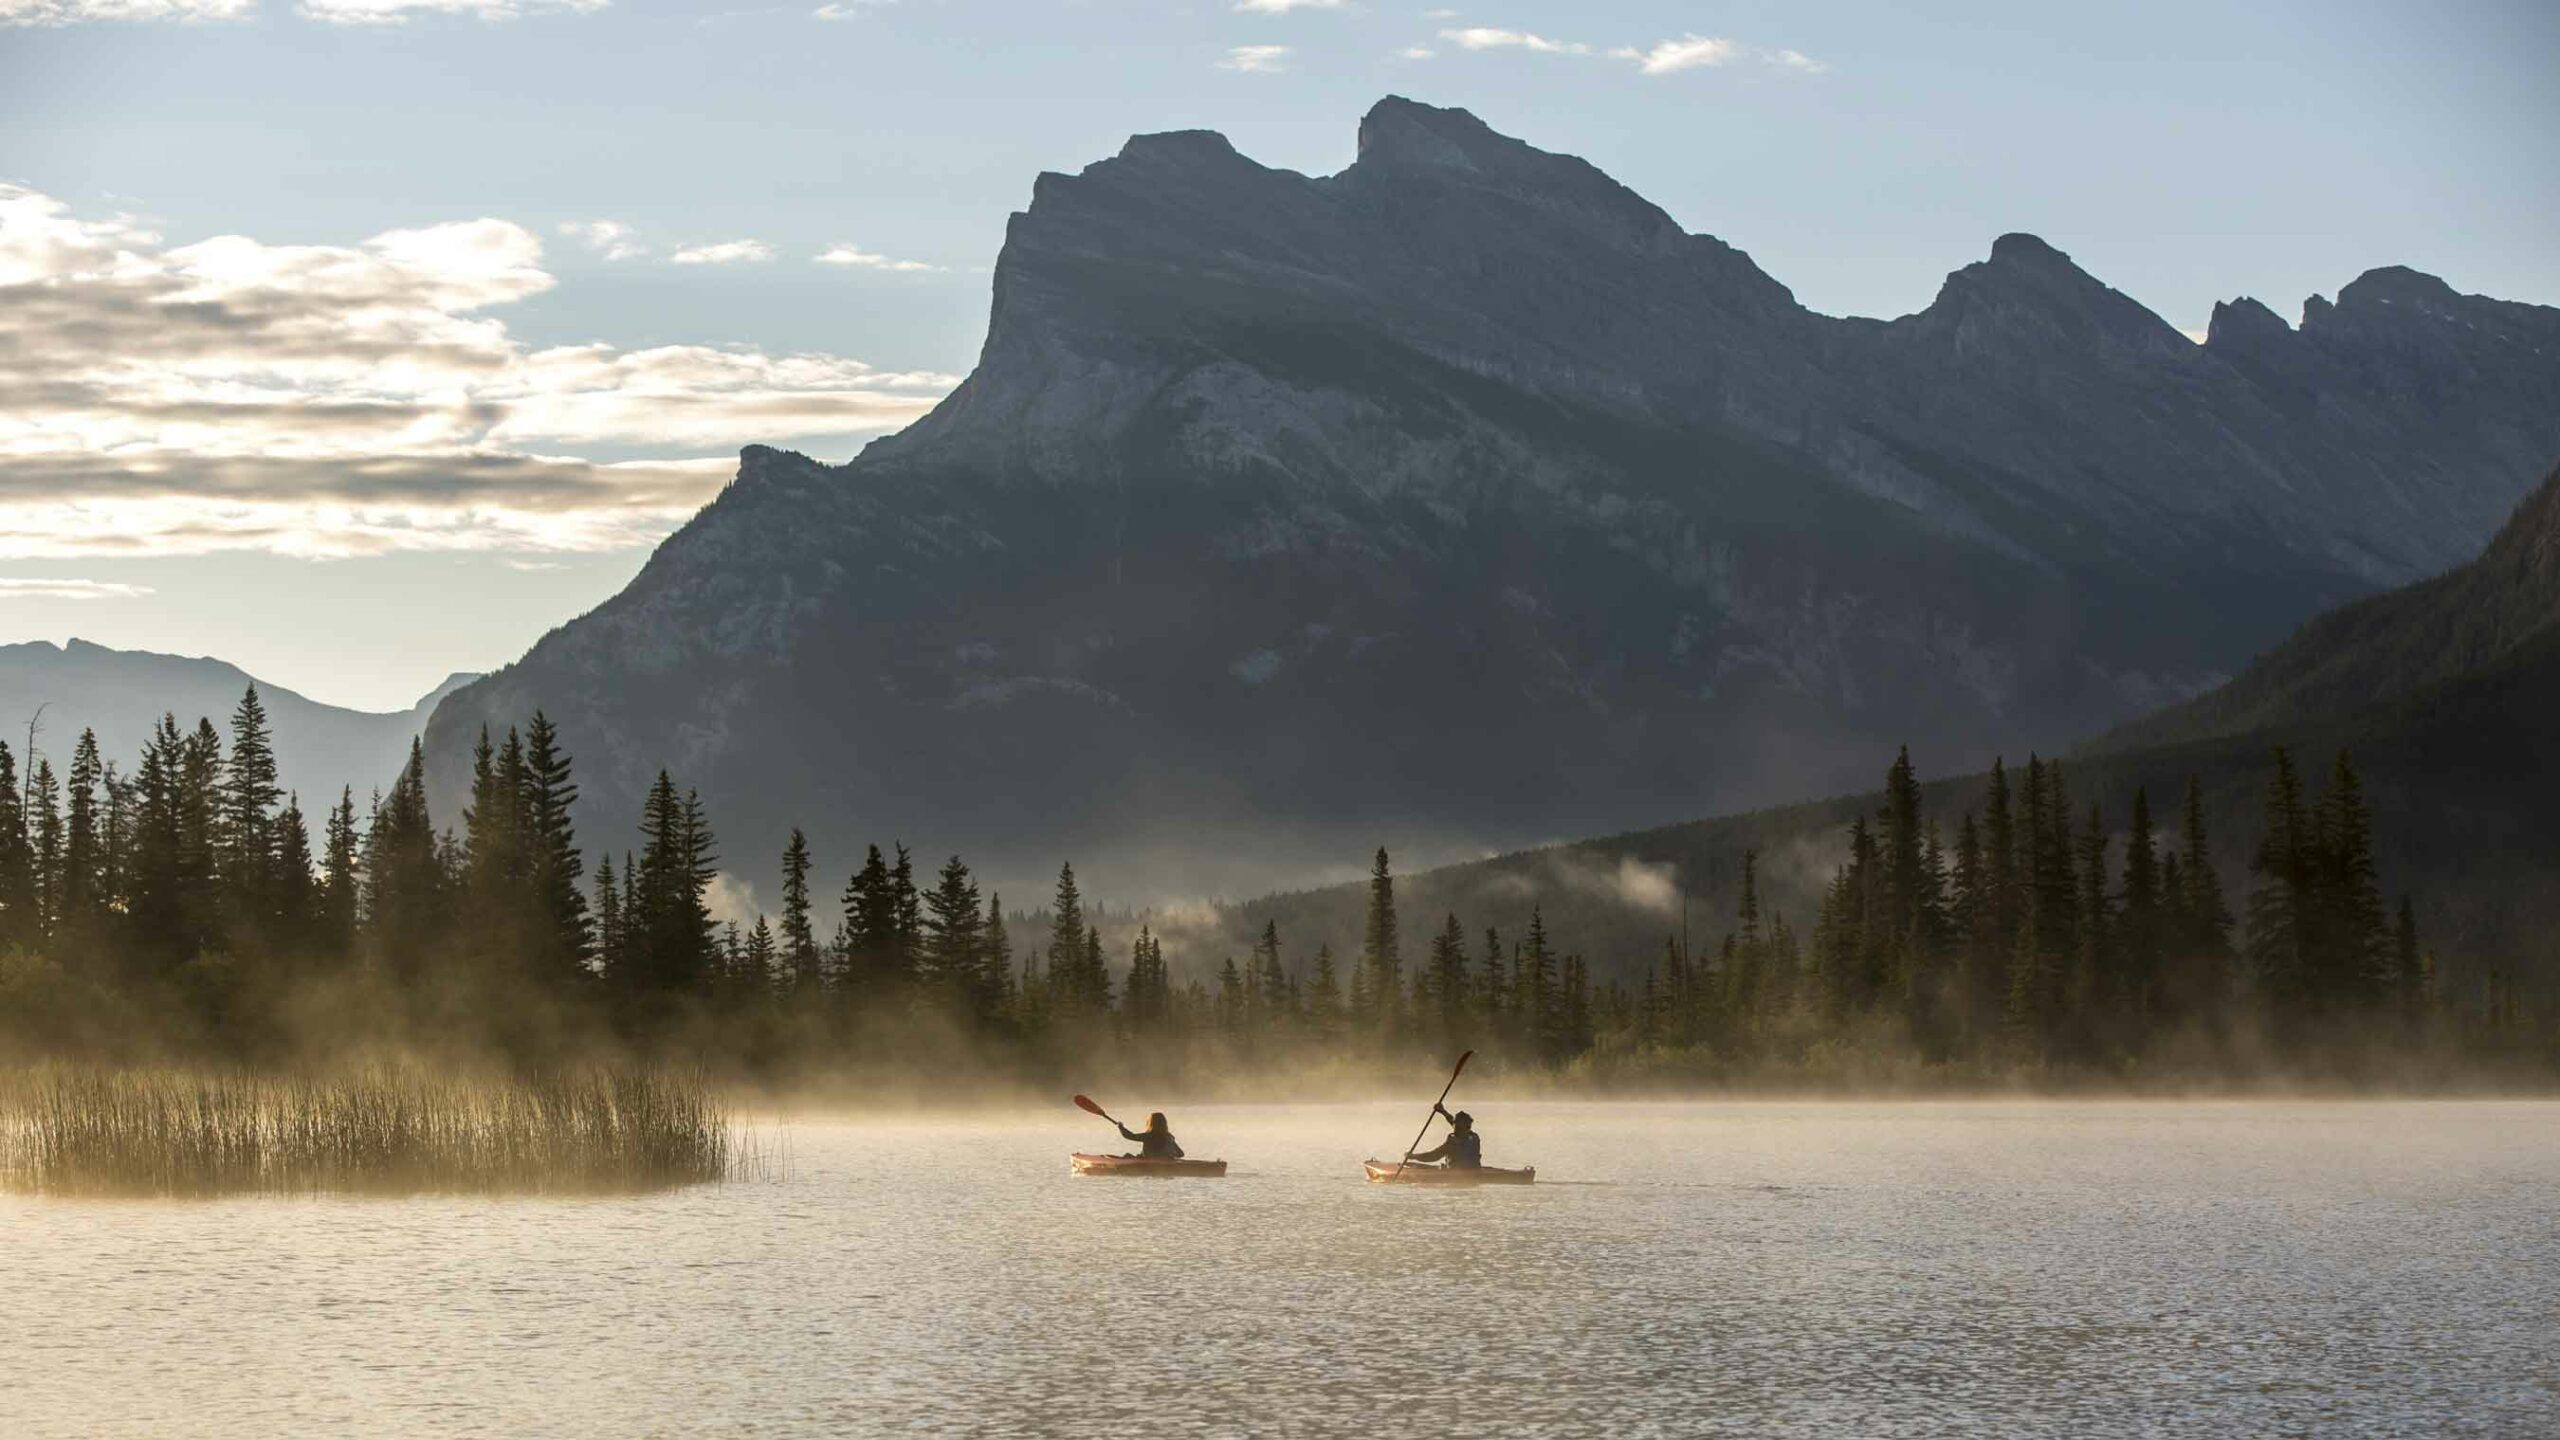 Two people kayak on Vermillion Lakes under Mount Rundle in Banff during summer in the Canadian Rockies